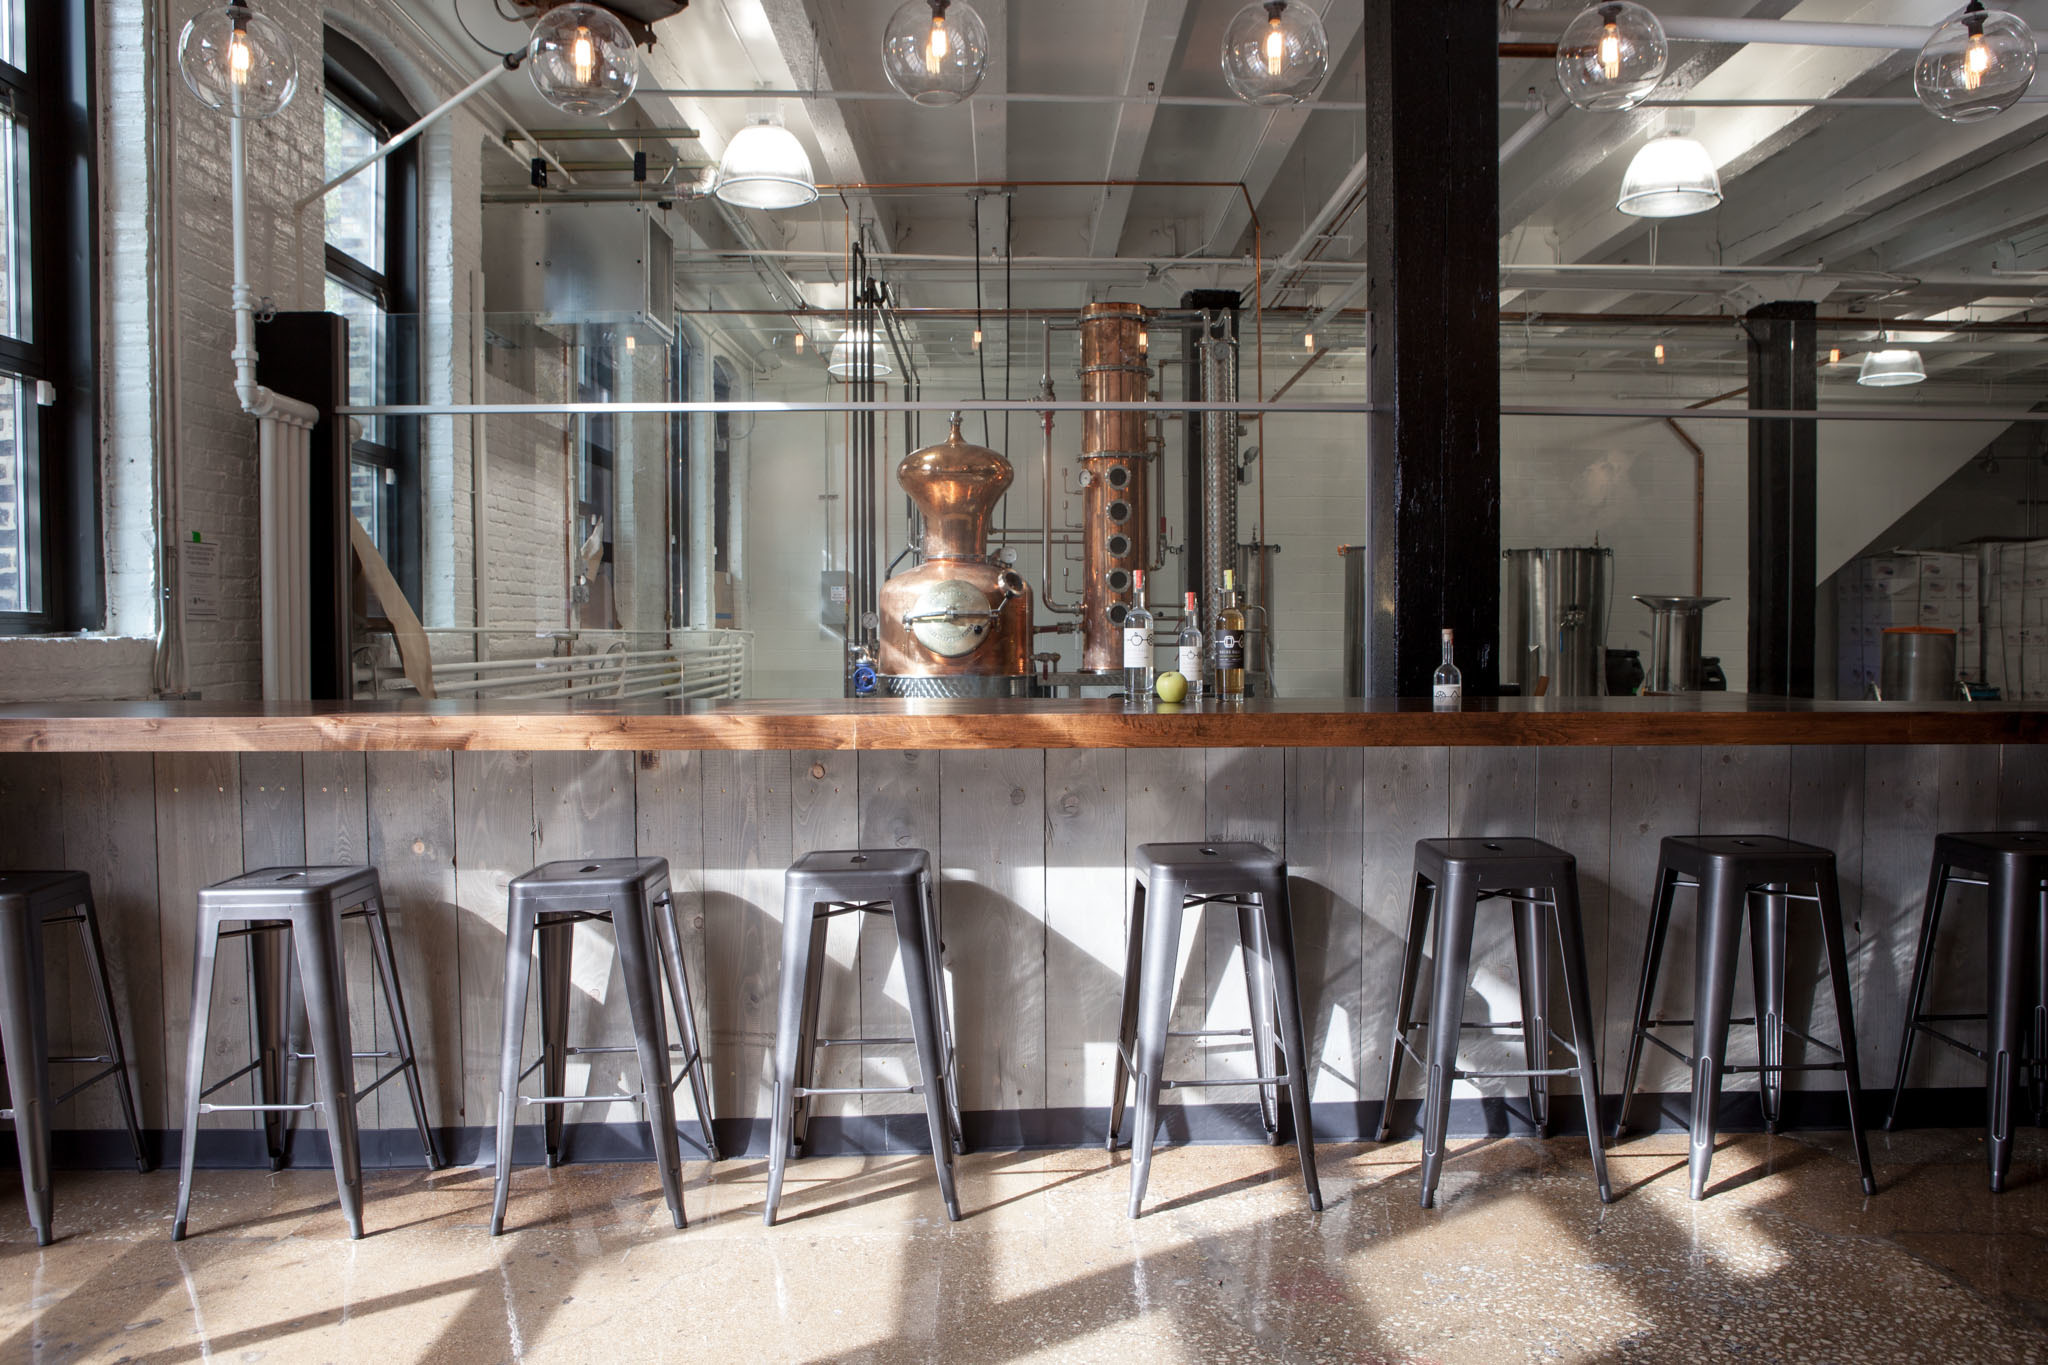 The best distilleries in Chicago